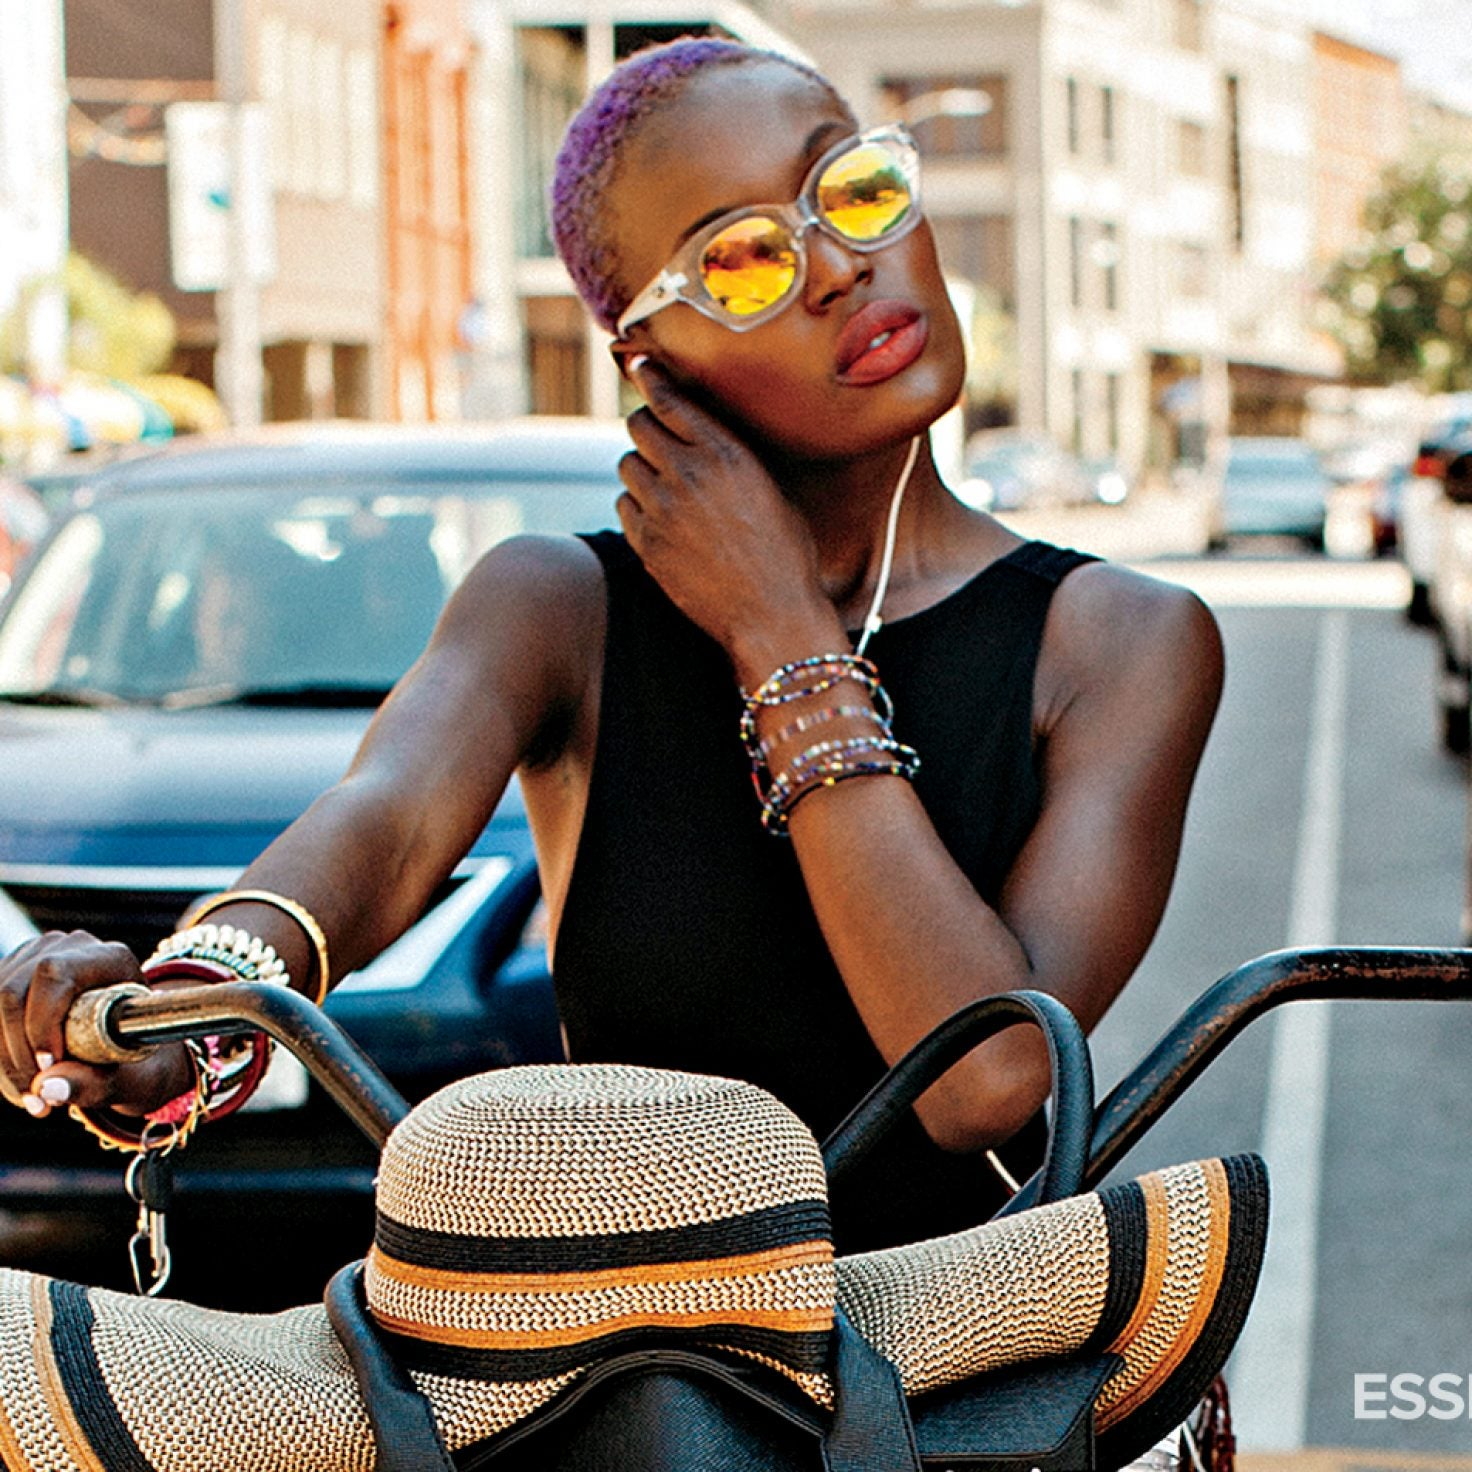 Photographer Seleen Saleh On Capturing Black Street Style During Fashion Week